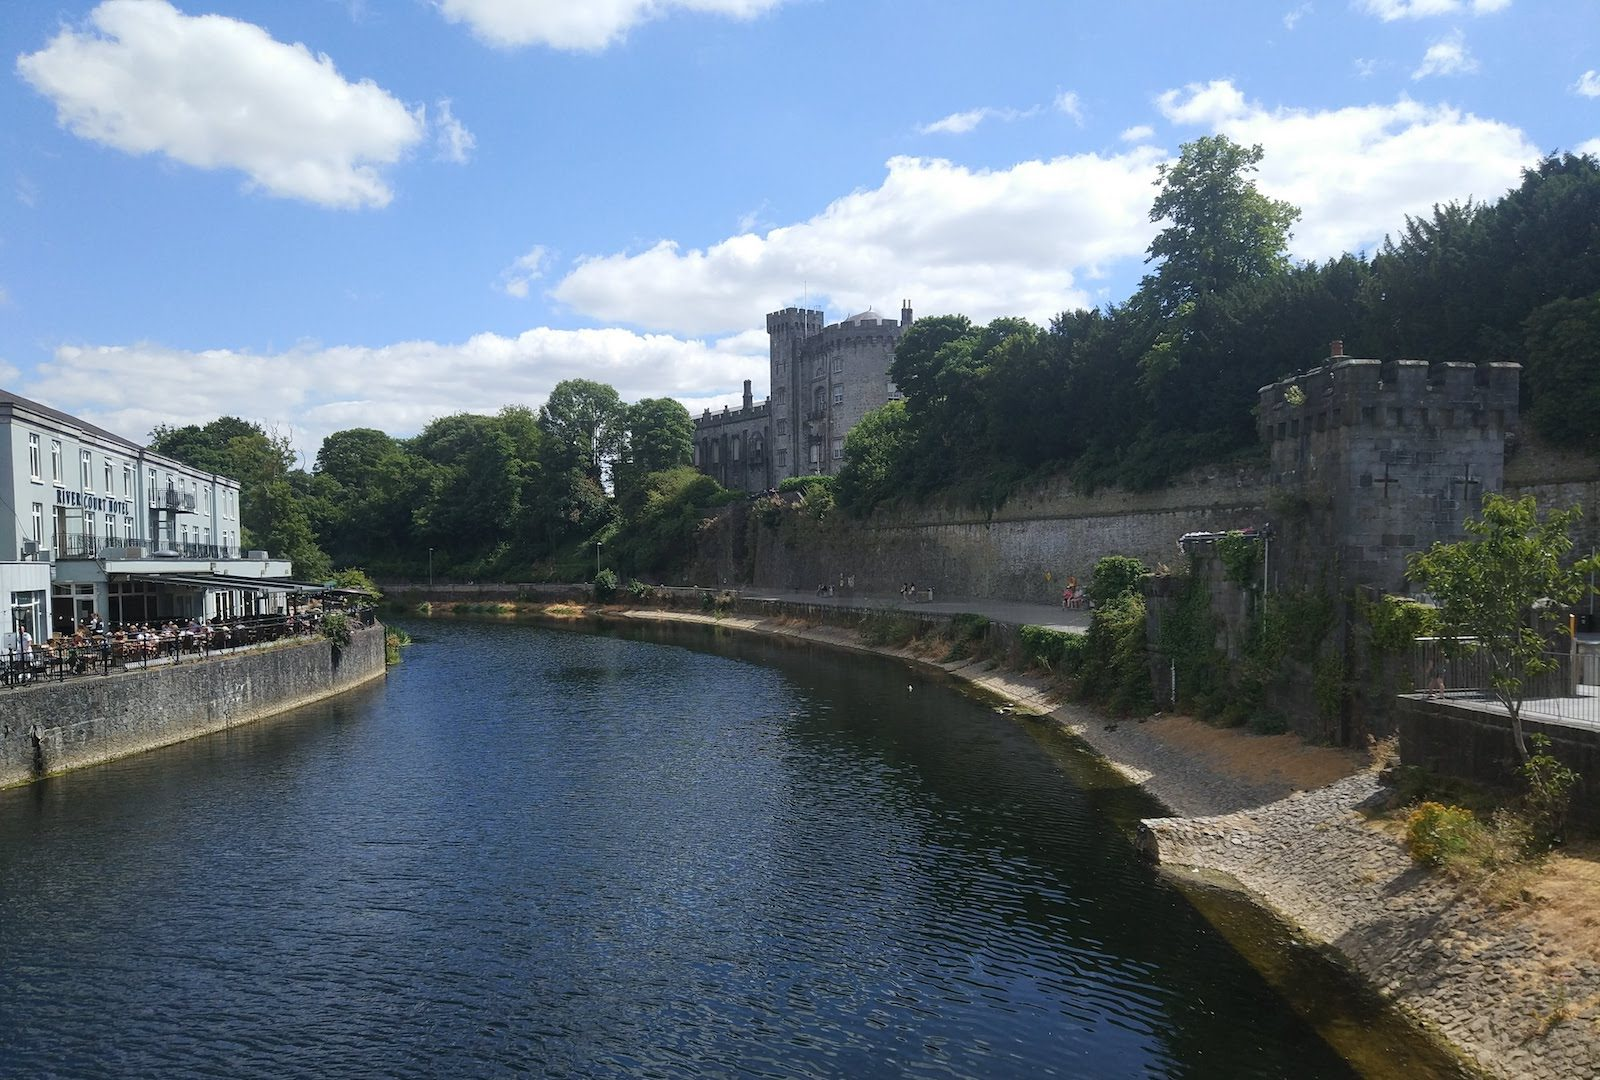 The Must-sees in Kilkenny